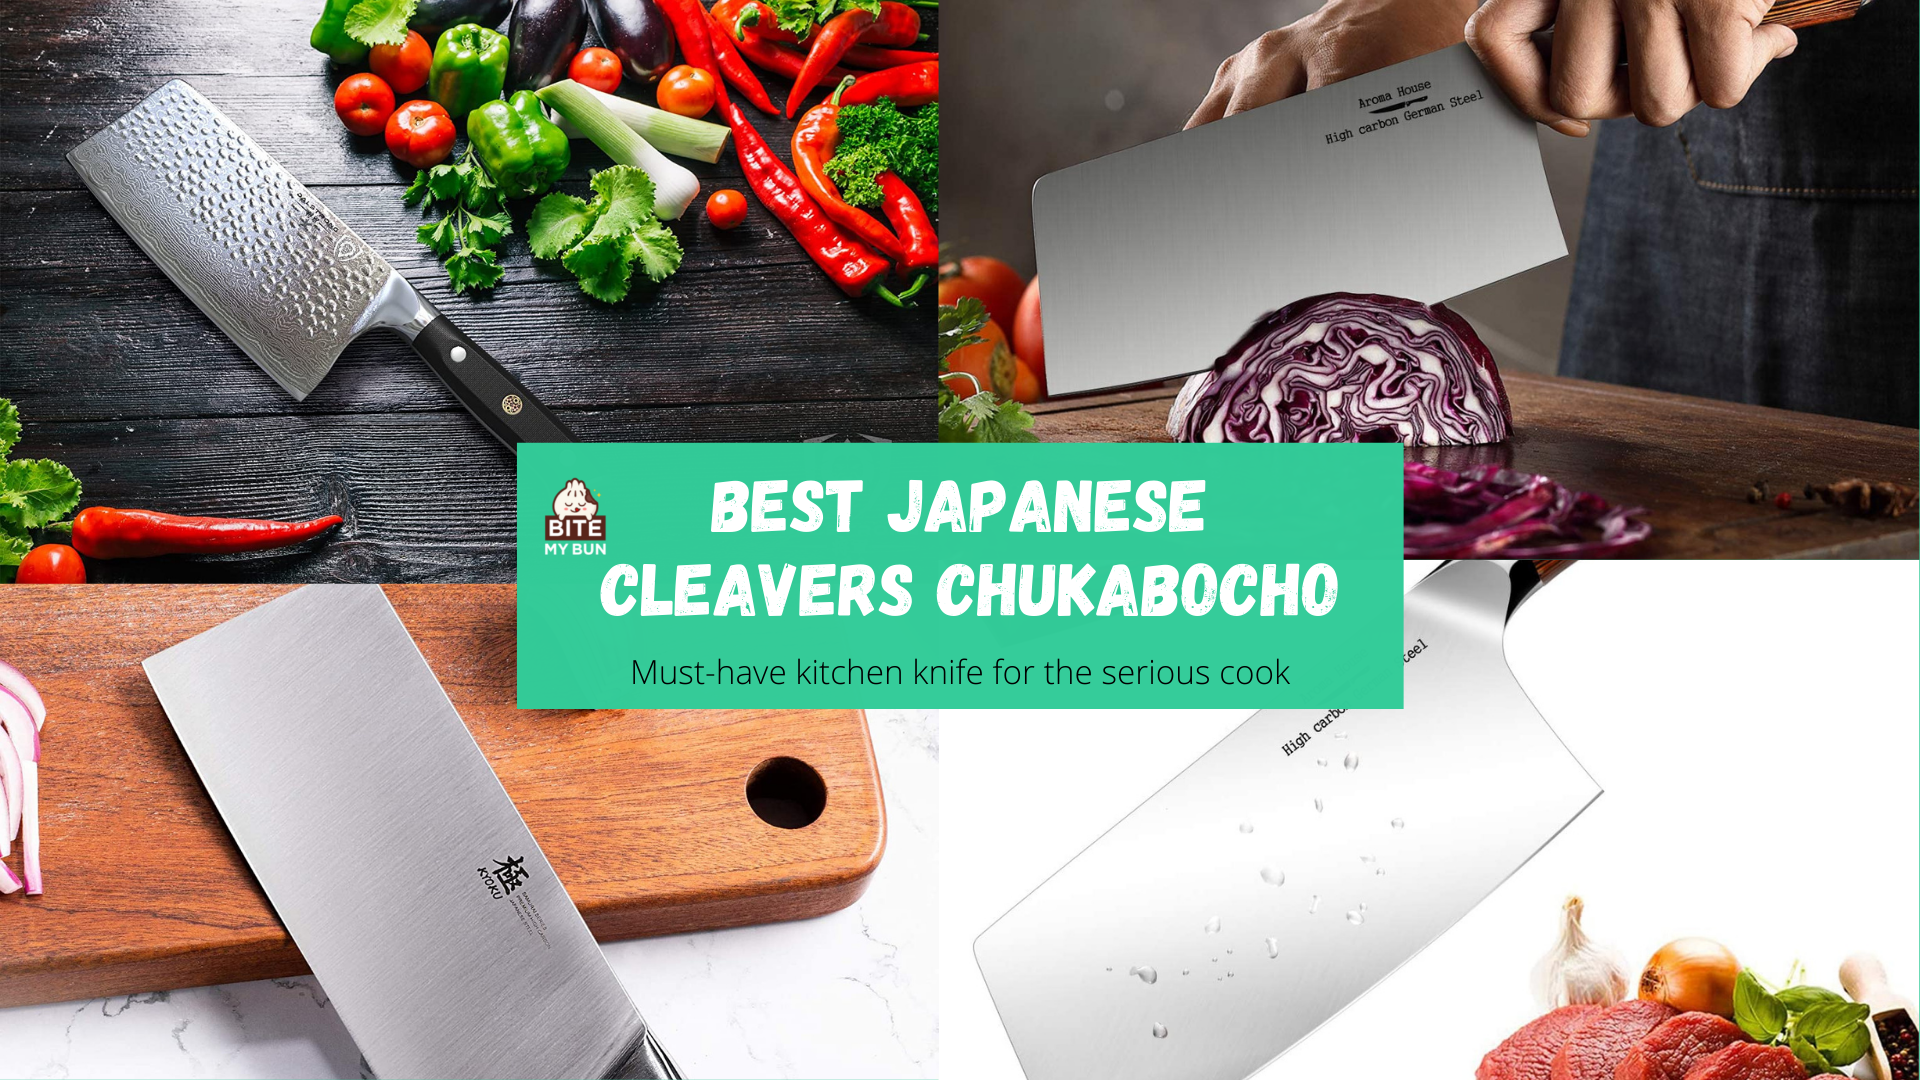 Best Japanese cleavers chukabocho   Must-have kitchen knife for the serious cook